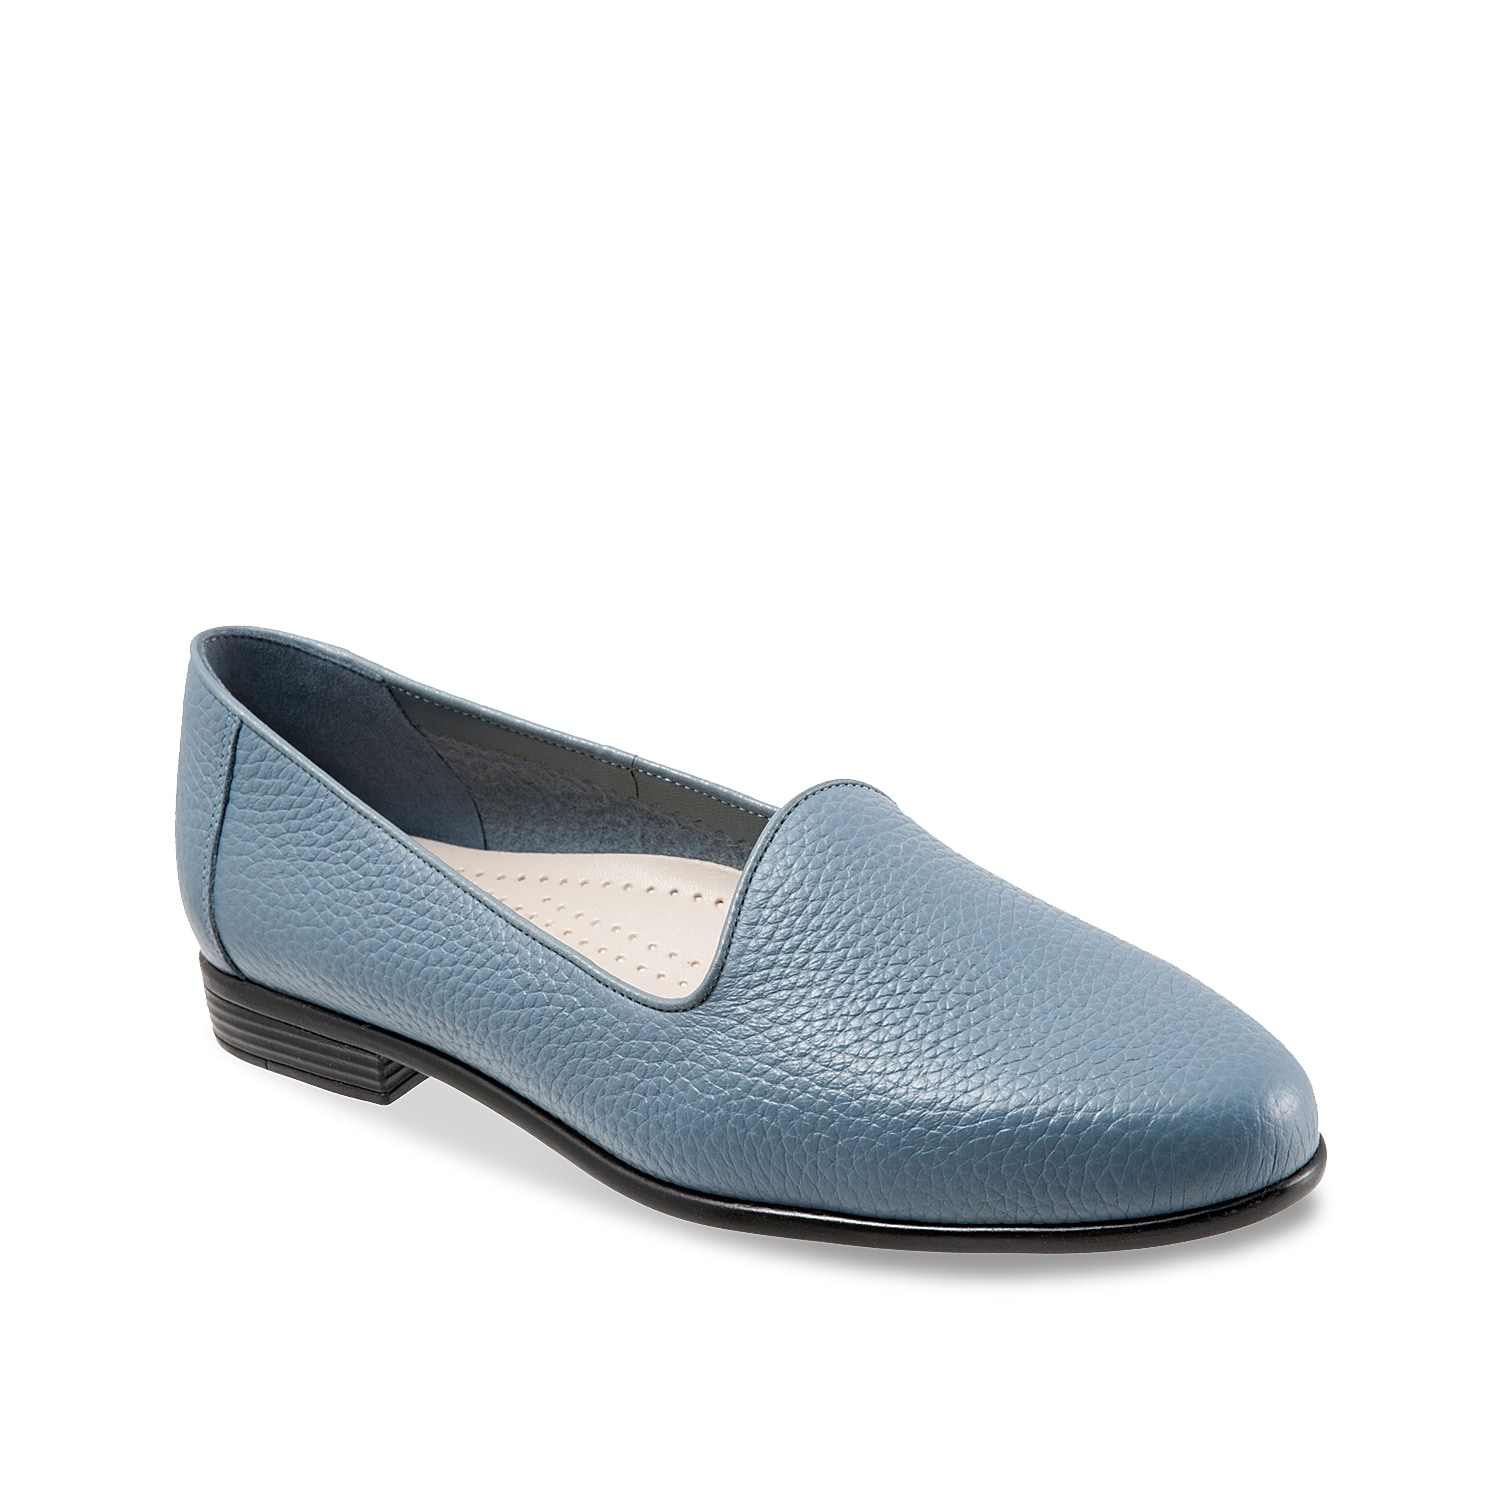 Finish off your tailored look with the Liz loafer from Trotters. A subtle cutaway lip and cushioned footbed with arch support make these flats so comfortable you\\\'ll never want to take them off!